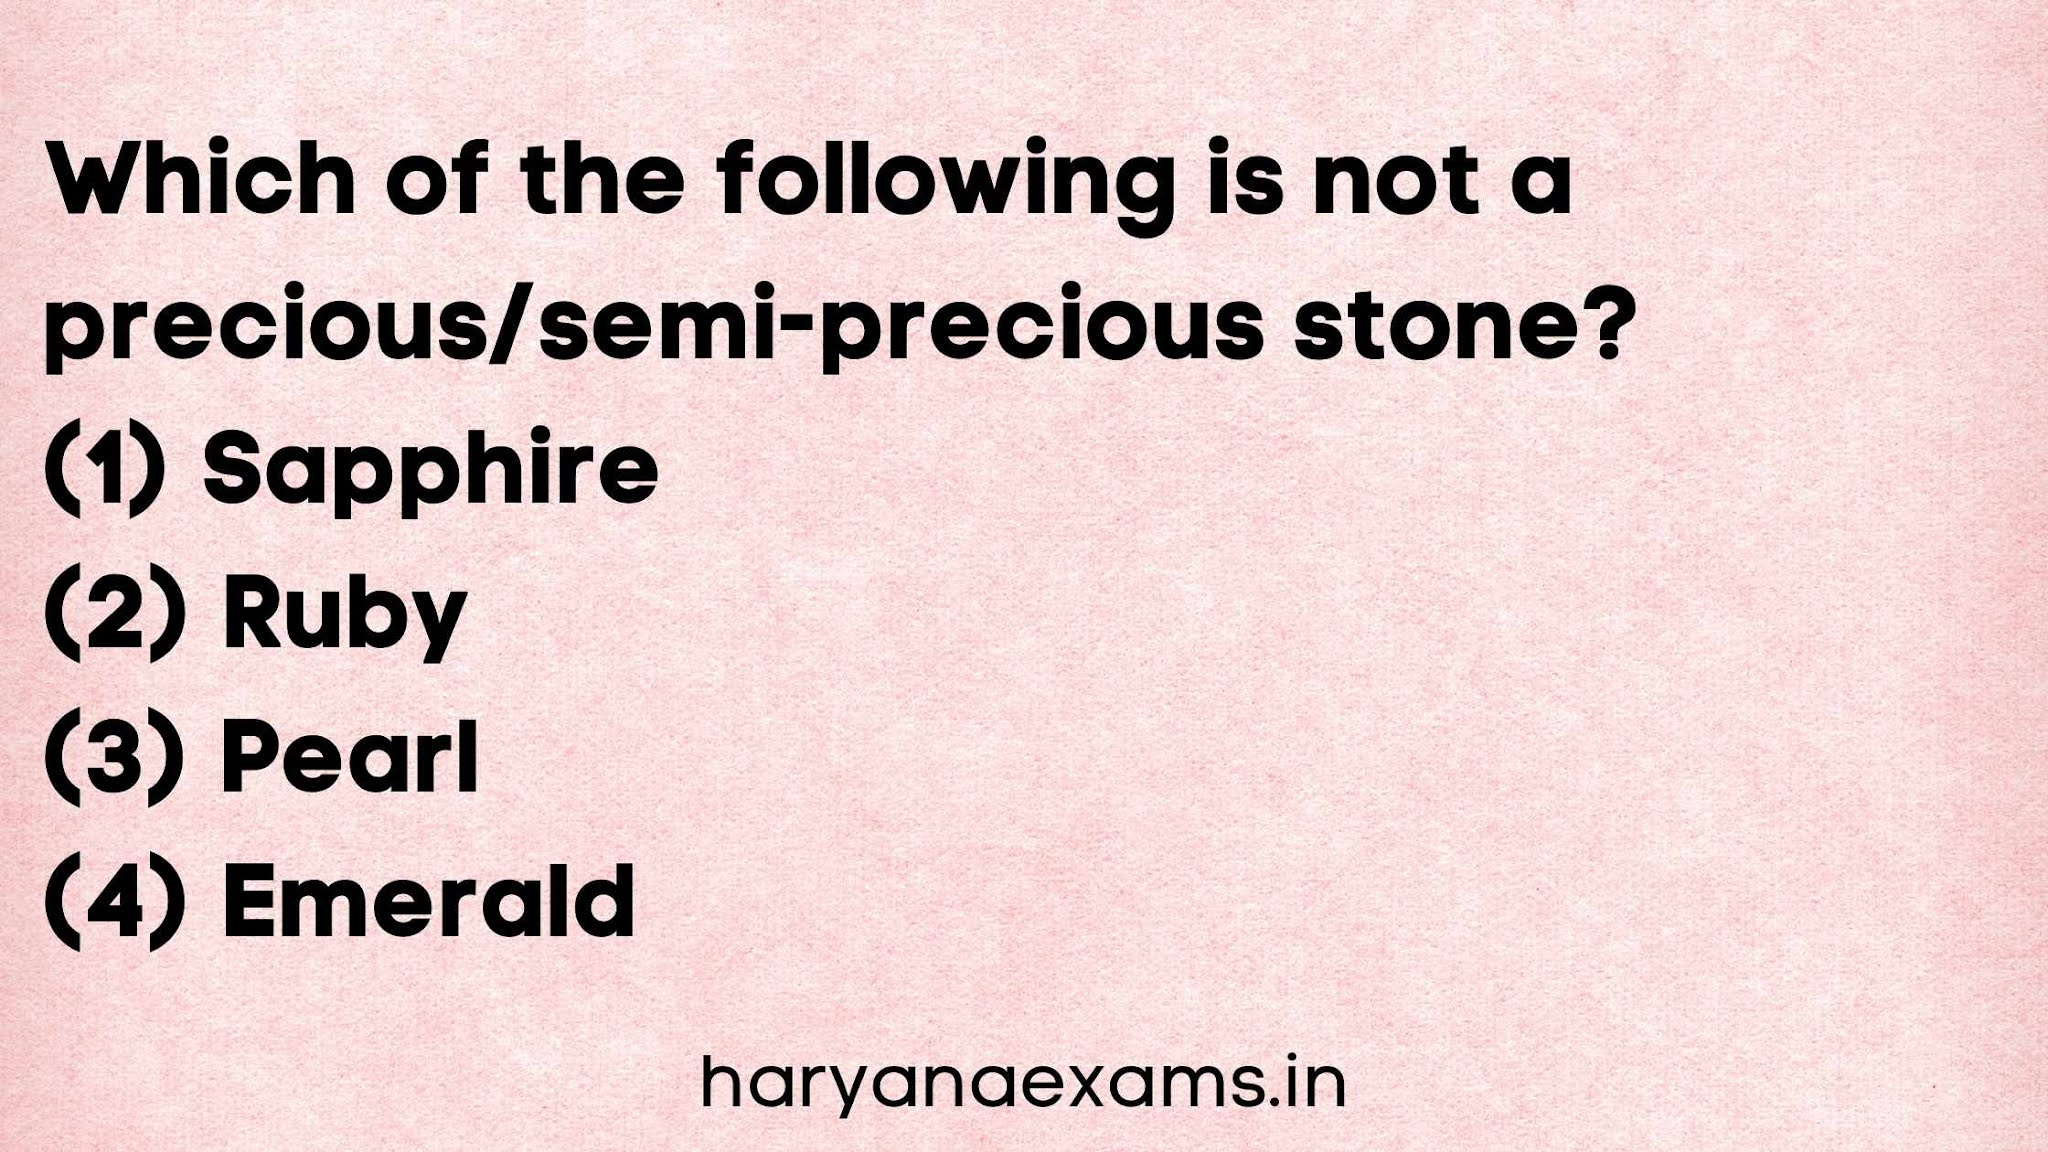 Which of the following is not a precious/semi-precious stone?   (1) Sapphire   (2) Ruby   (3) Pearl   (4) Emerald